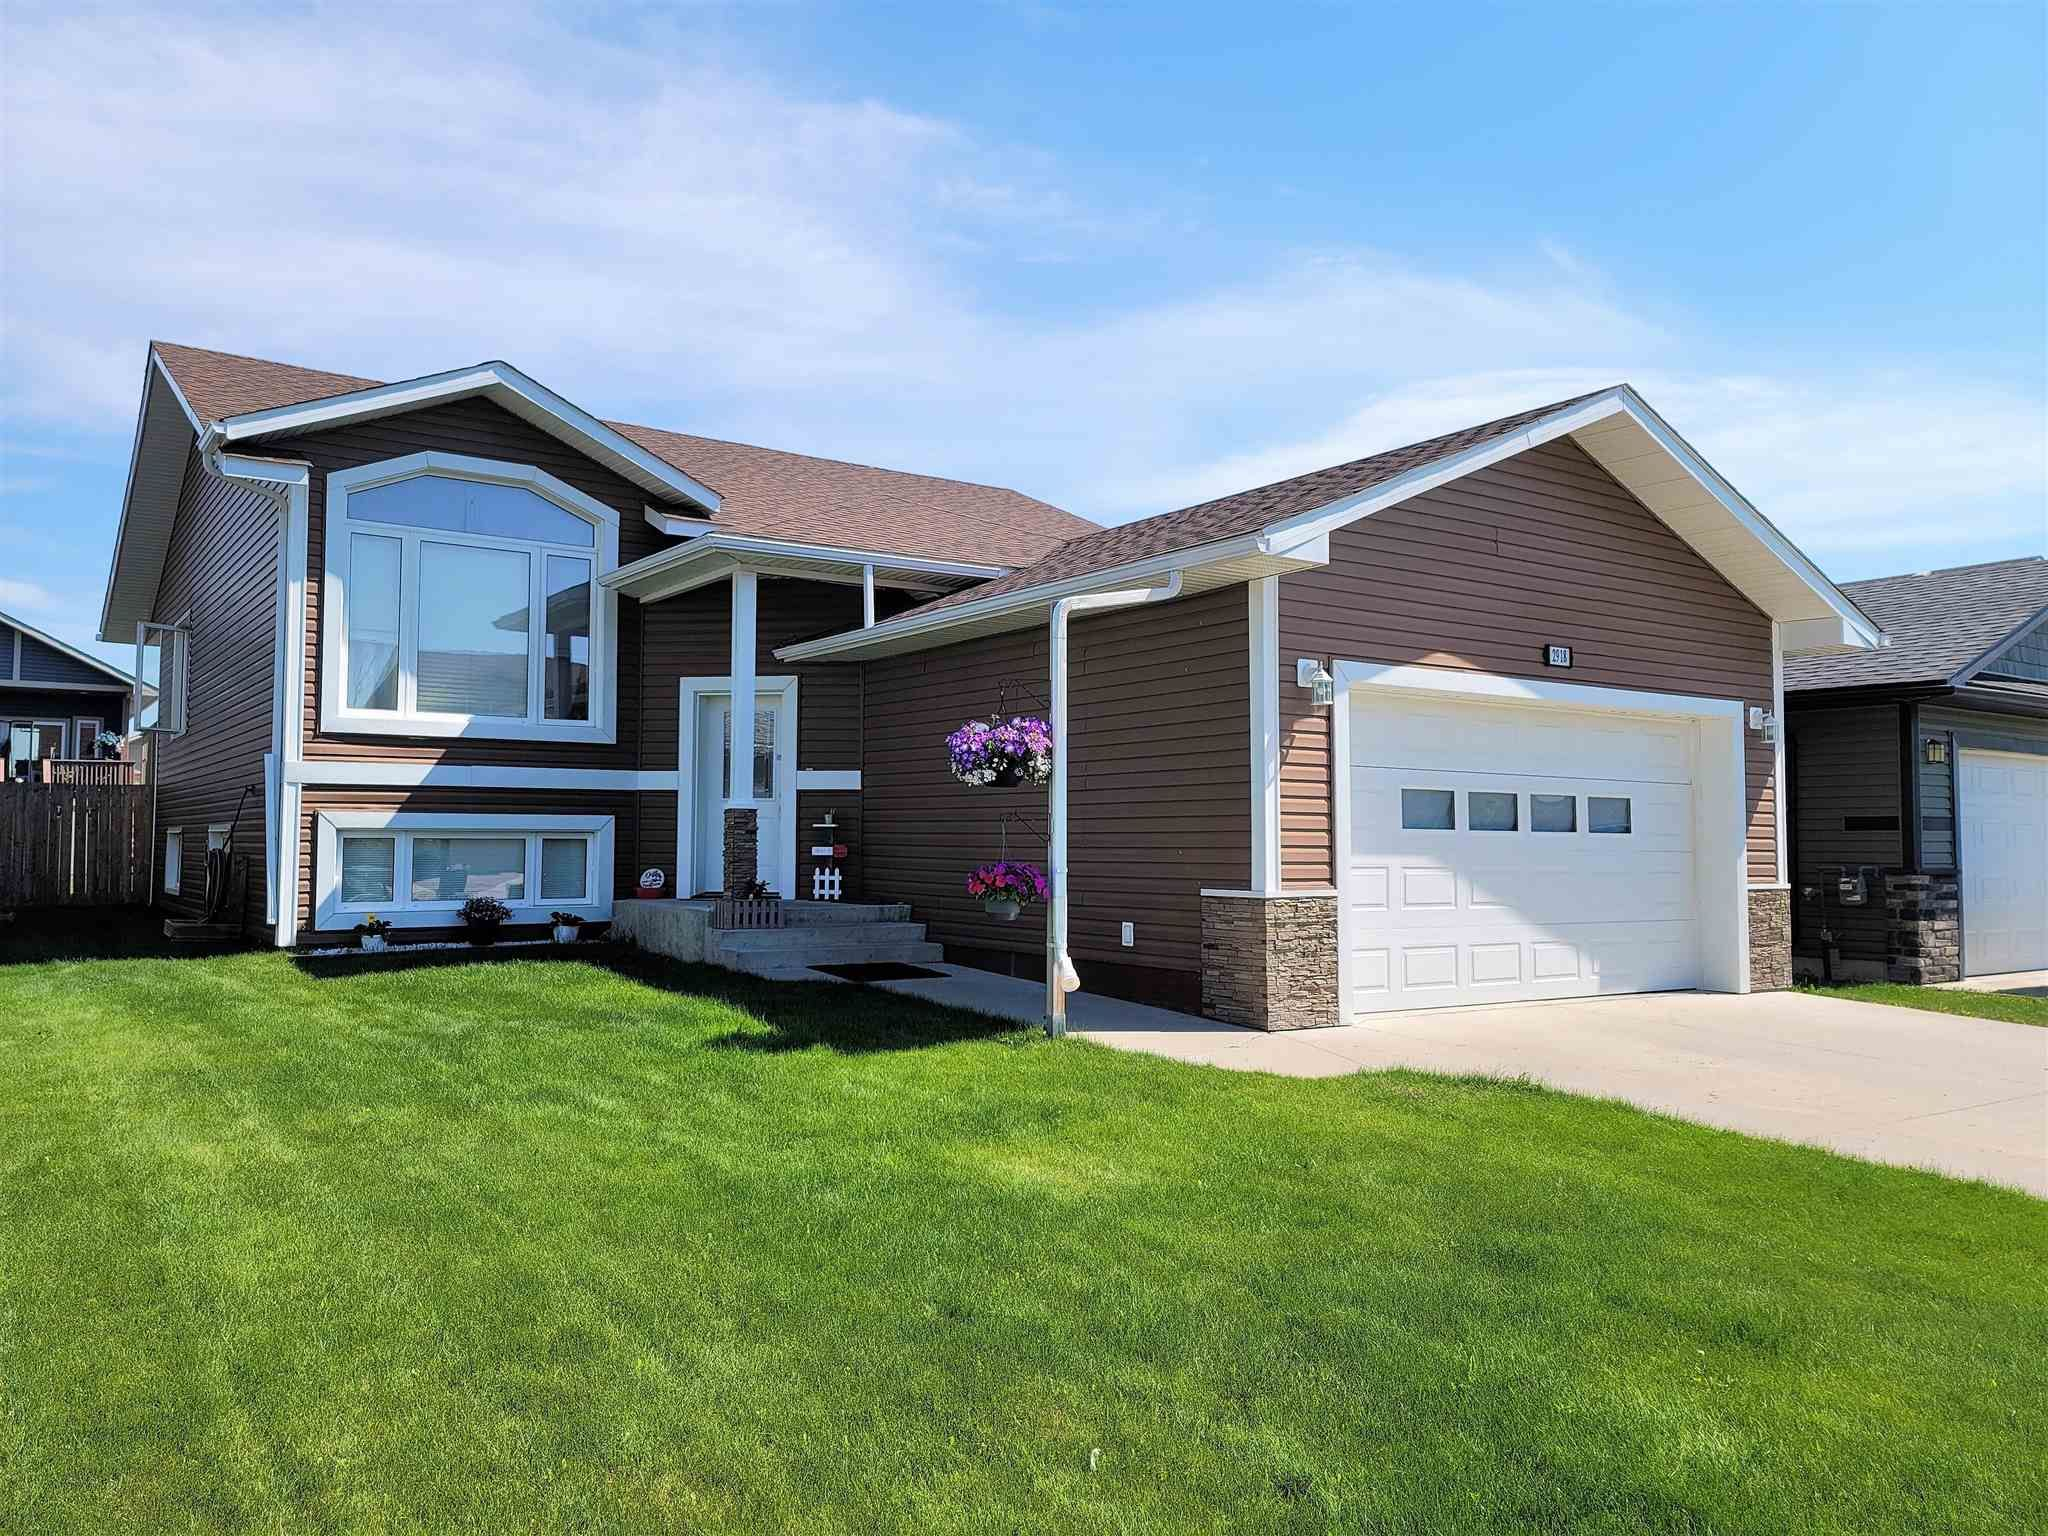 Main Photo: 2918 Goldenrod Gate: Cold Lake House for sale : MLS®# E4252334